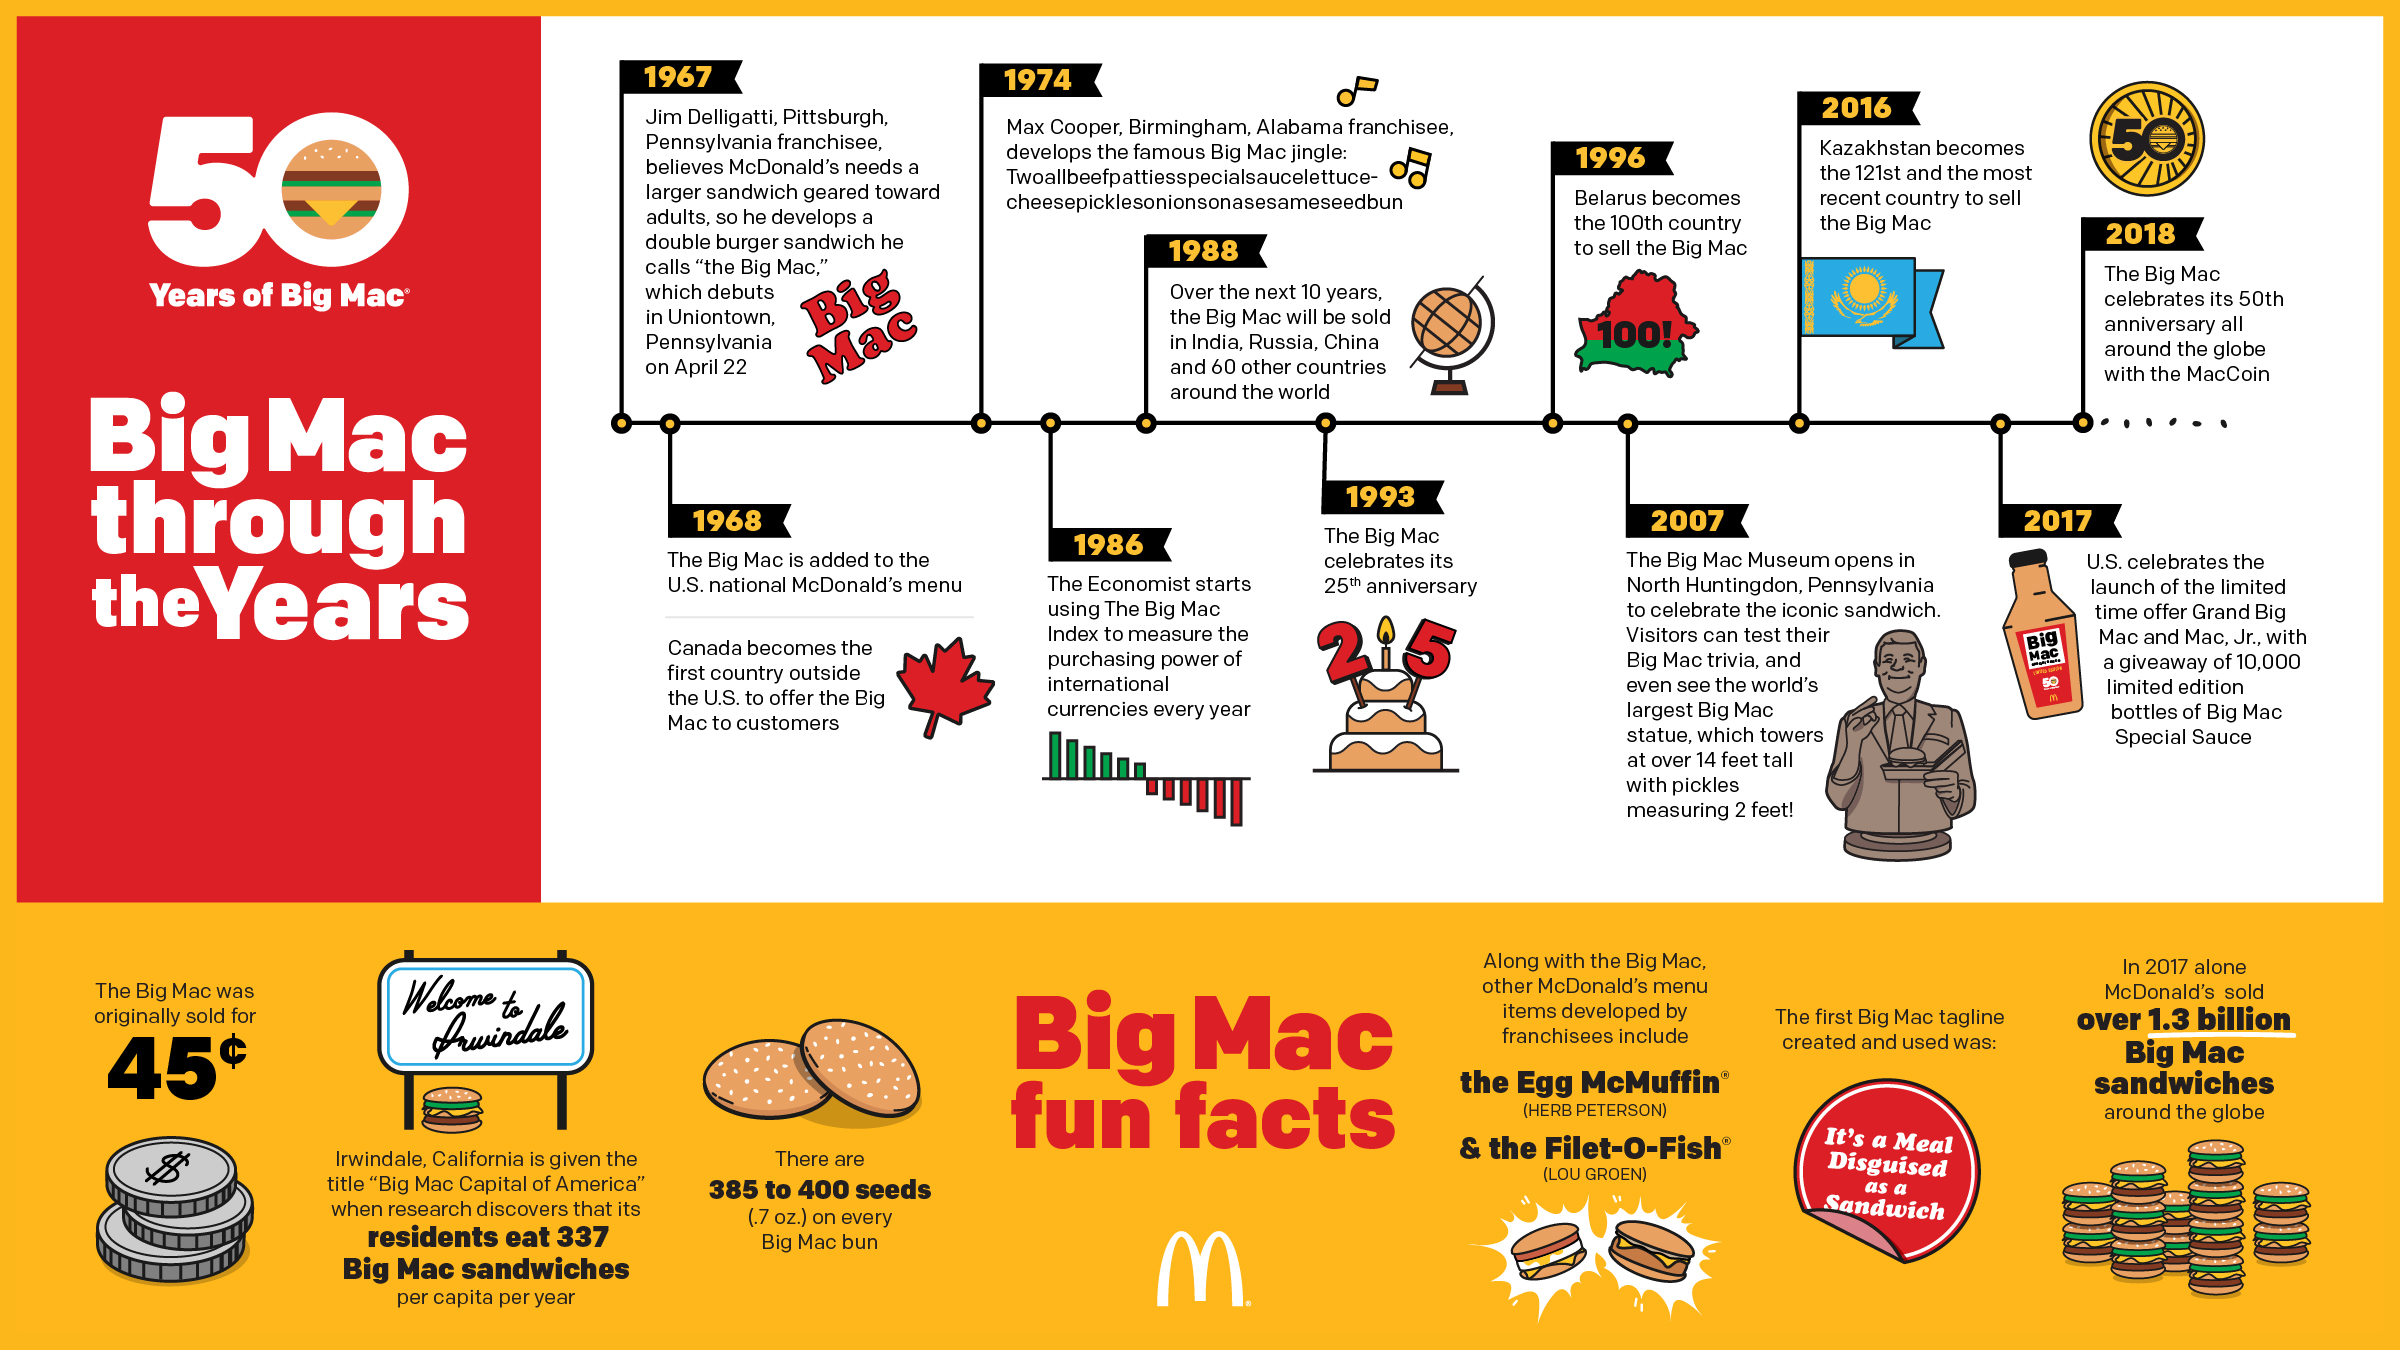 A quick turnaround infographic to celebrate 50 years of McDonalds Big Macs. All icons were illustrated by me.